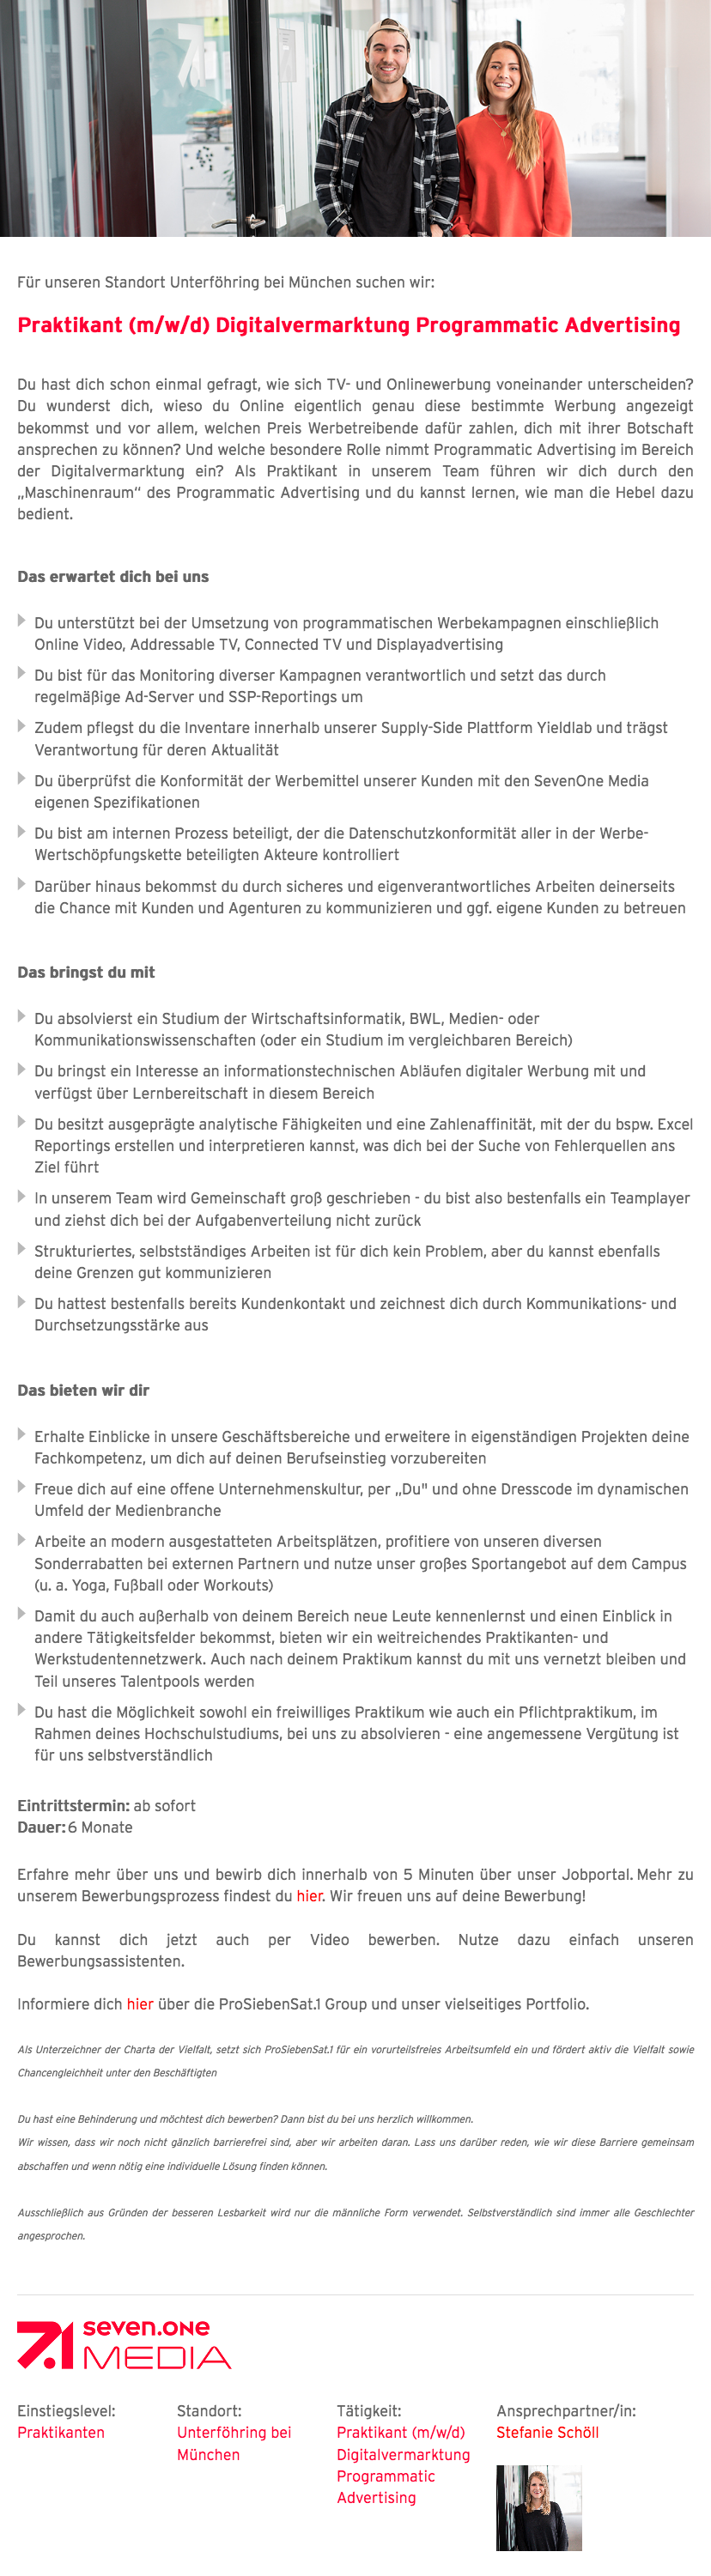 Praktikant (m/w/d) Digitalvermarktung Programmatic Advertising